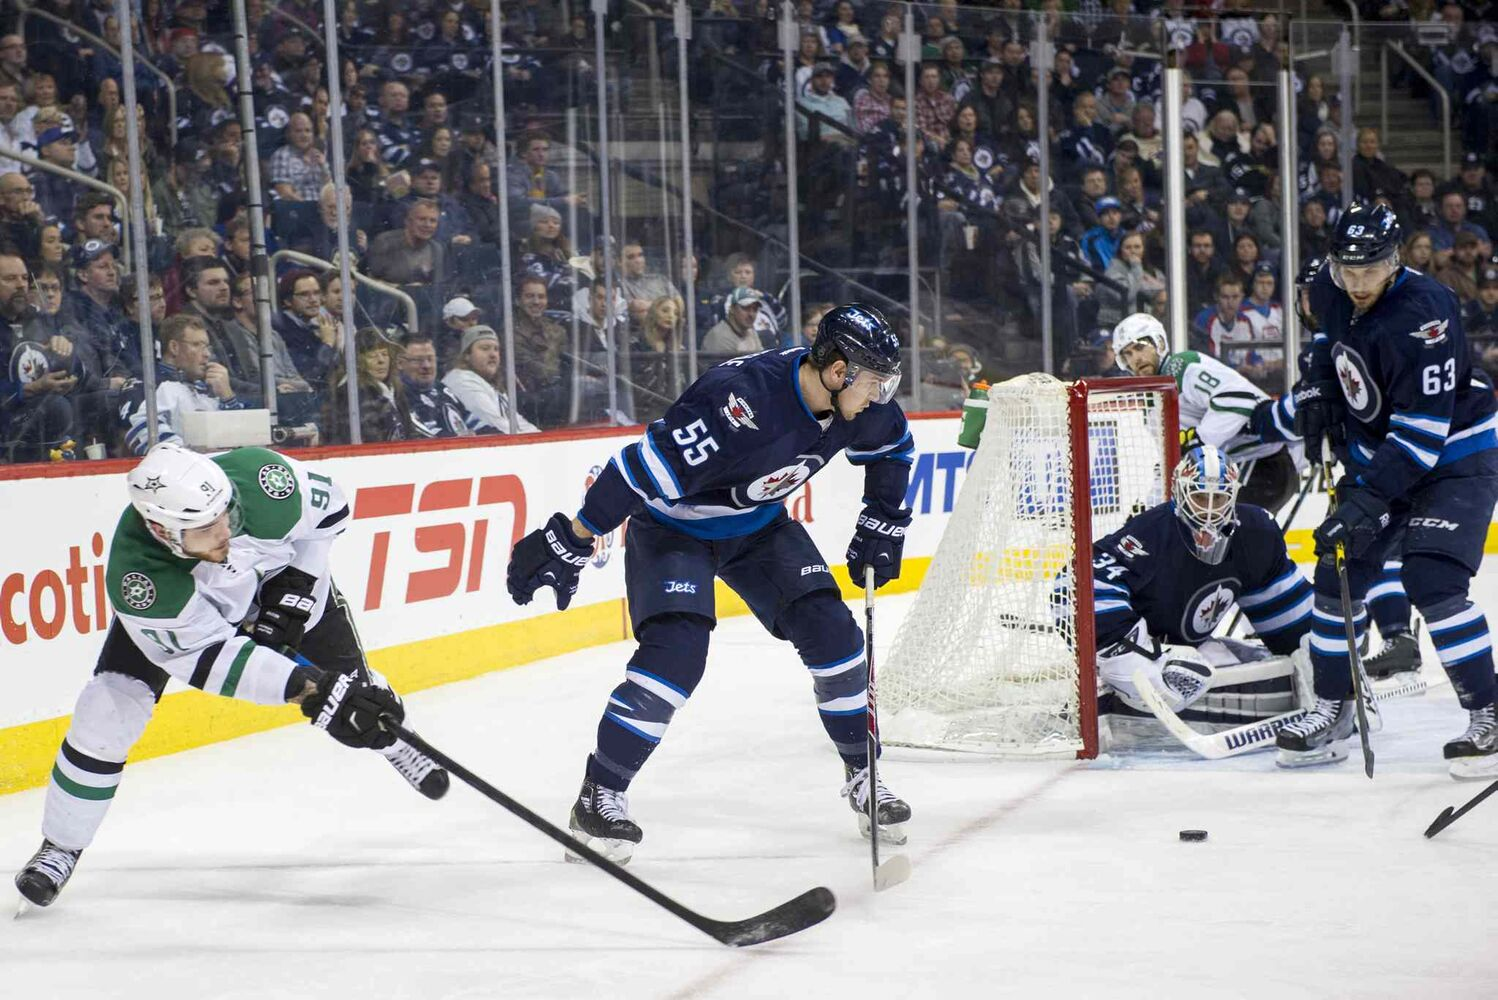 The Jets try to stop a third-period wrap-around shot from Dallas Stars Tyler Sequin (#91). (DAVID LIPNOWSKI / WINNIPEG FREE PRESS)